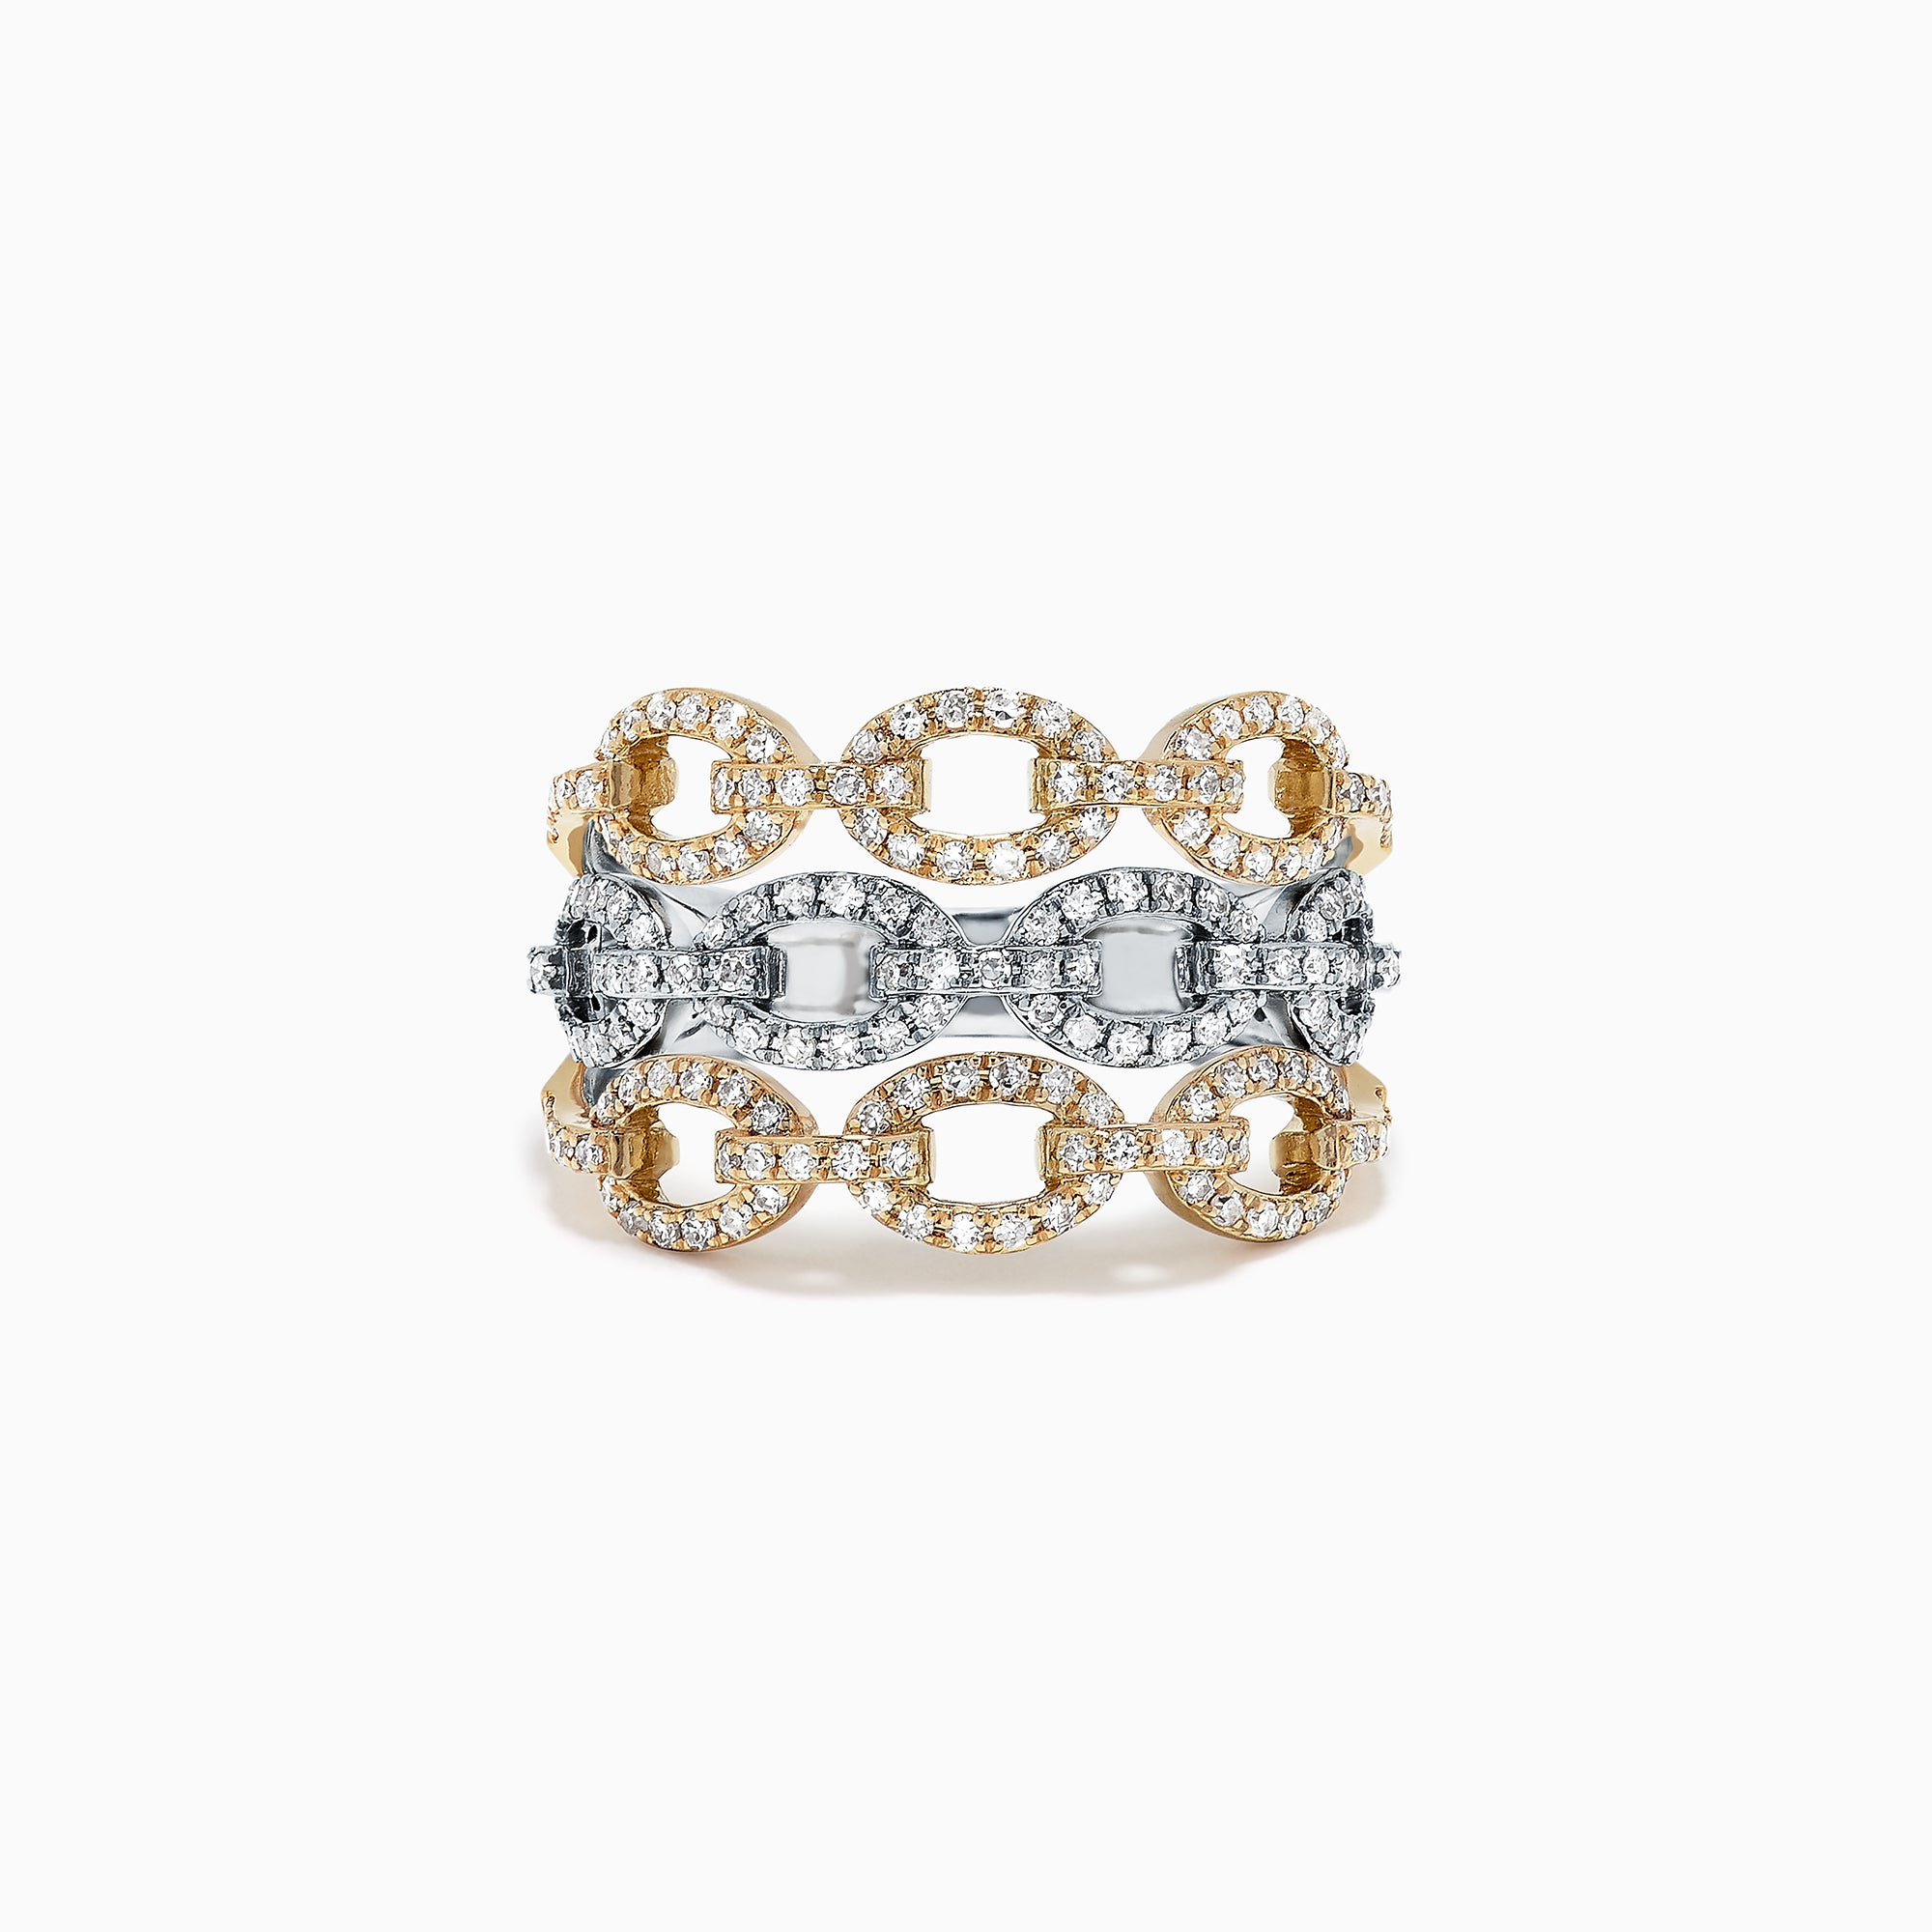 Effy Duo 14K Two Tone Gold Diamond Chain Link Ring, 0.73 TCW